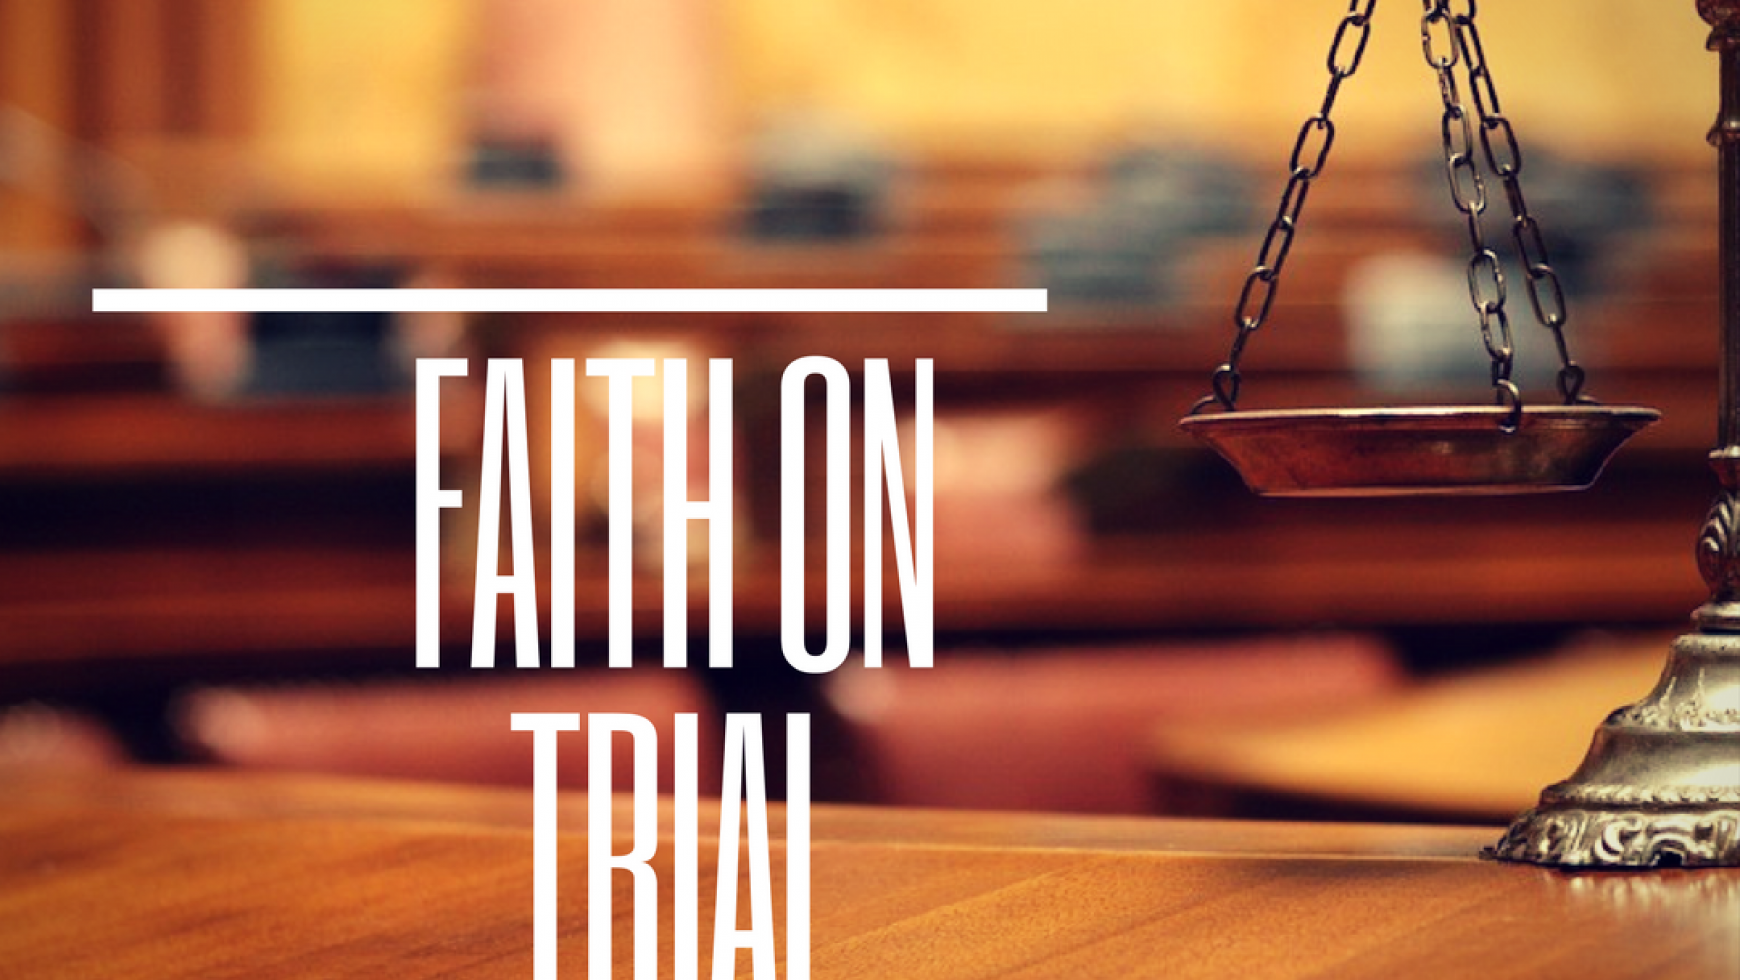 Faith-on-Trial-2-1740x980